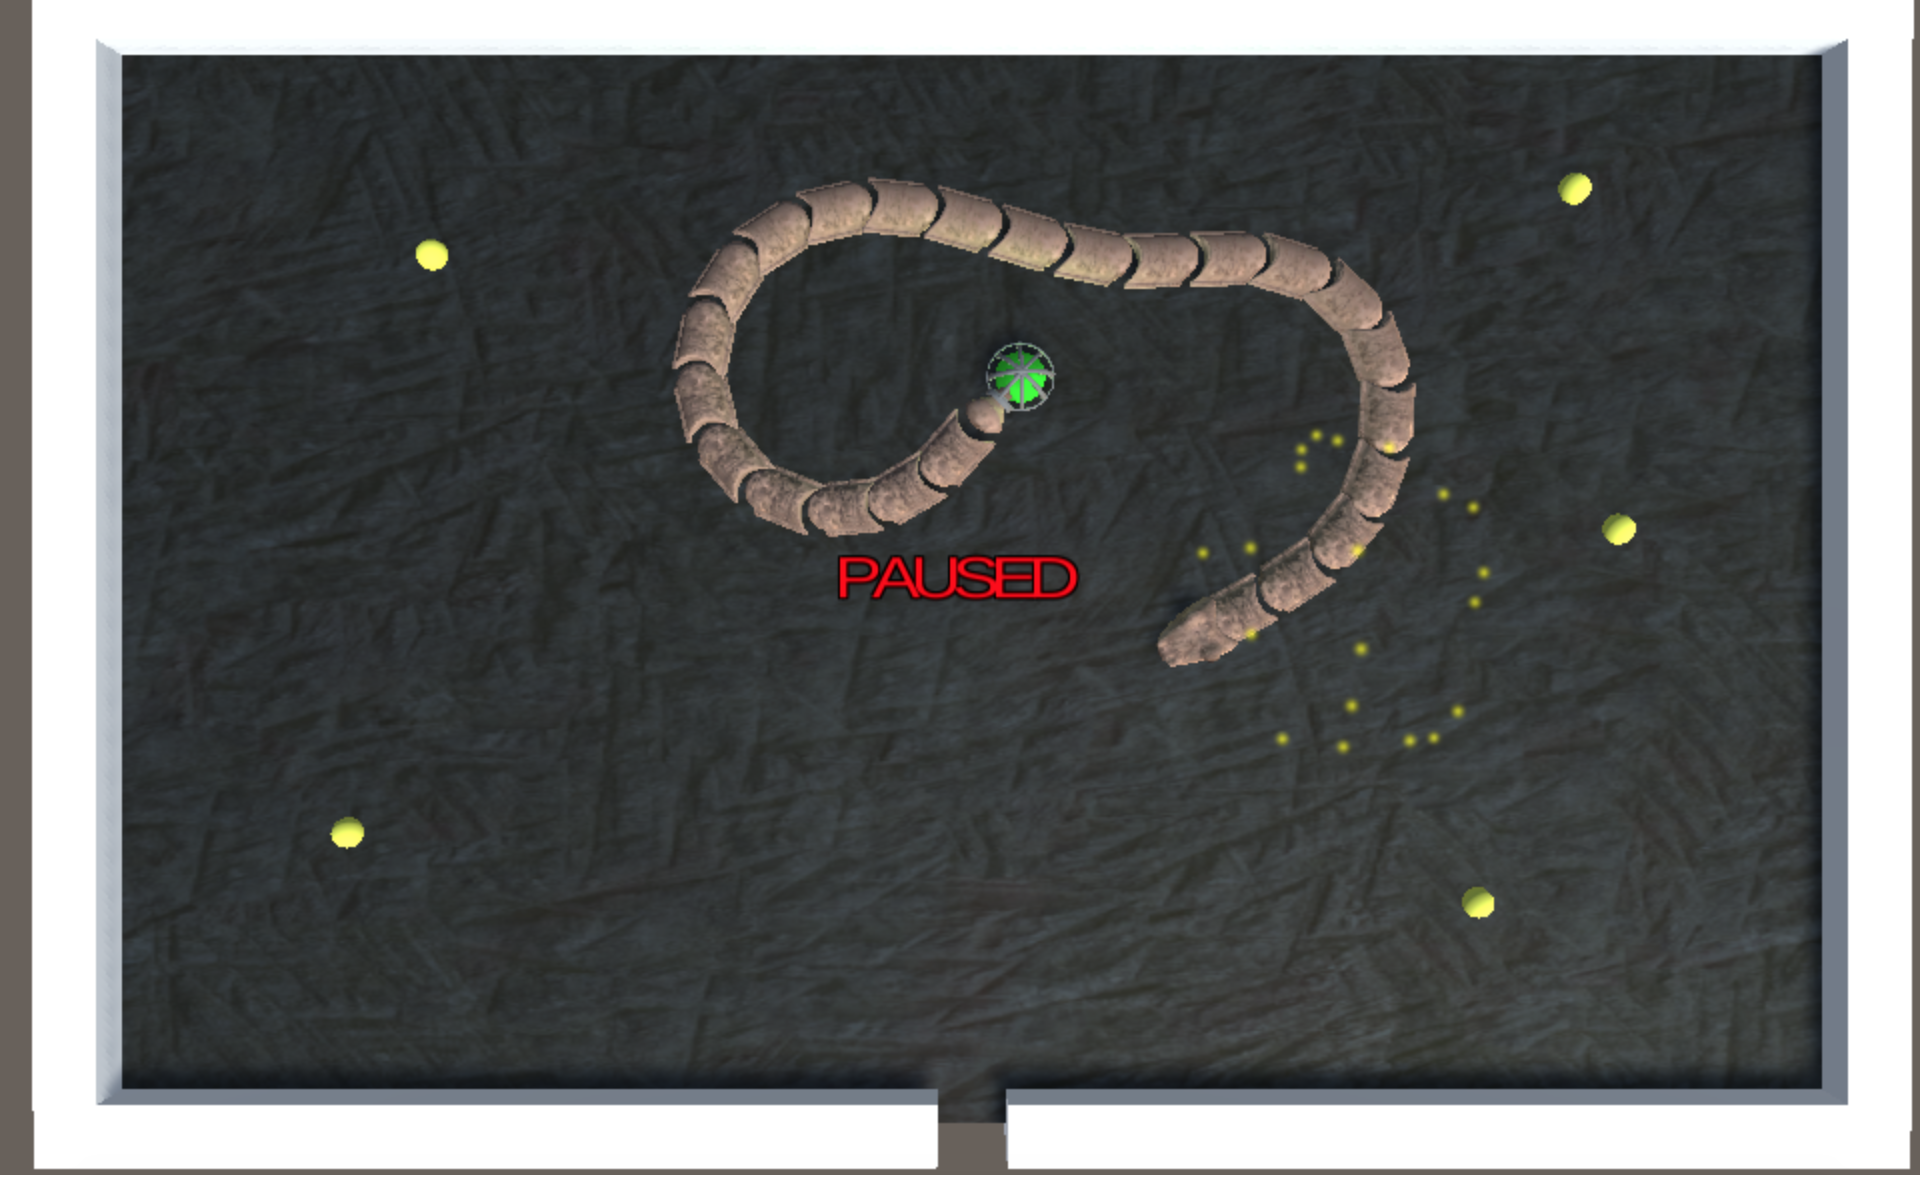 Ouroboros - Chase your tail by Toonhawk for Extra Credits